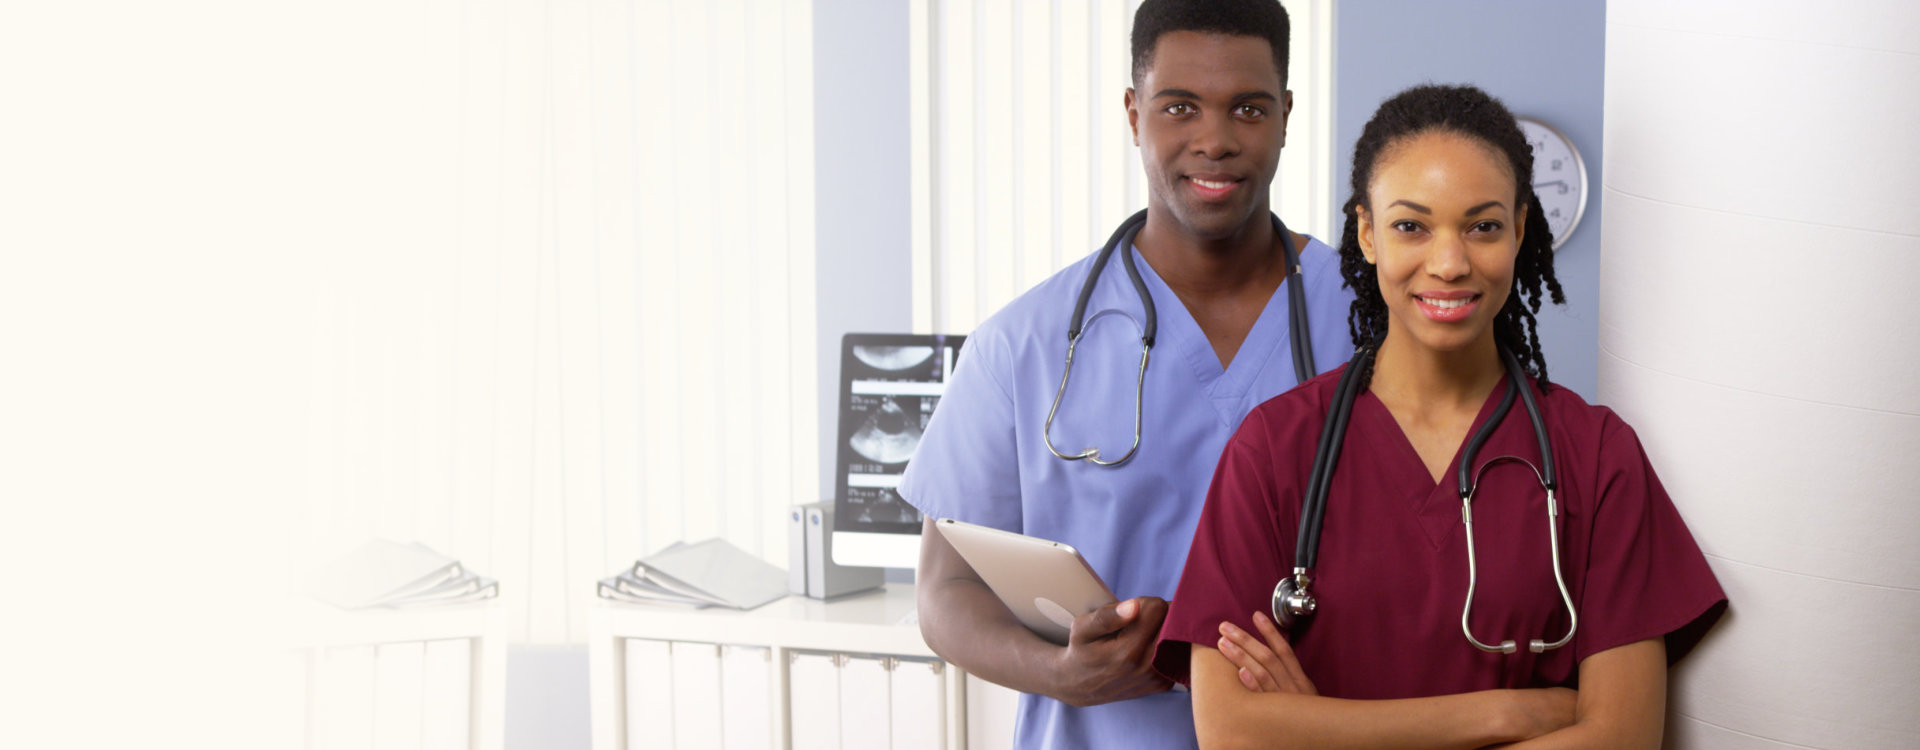 two healthcare professionals